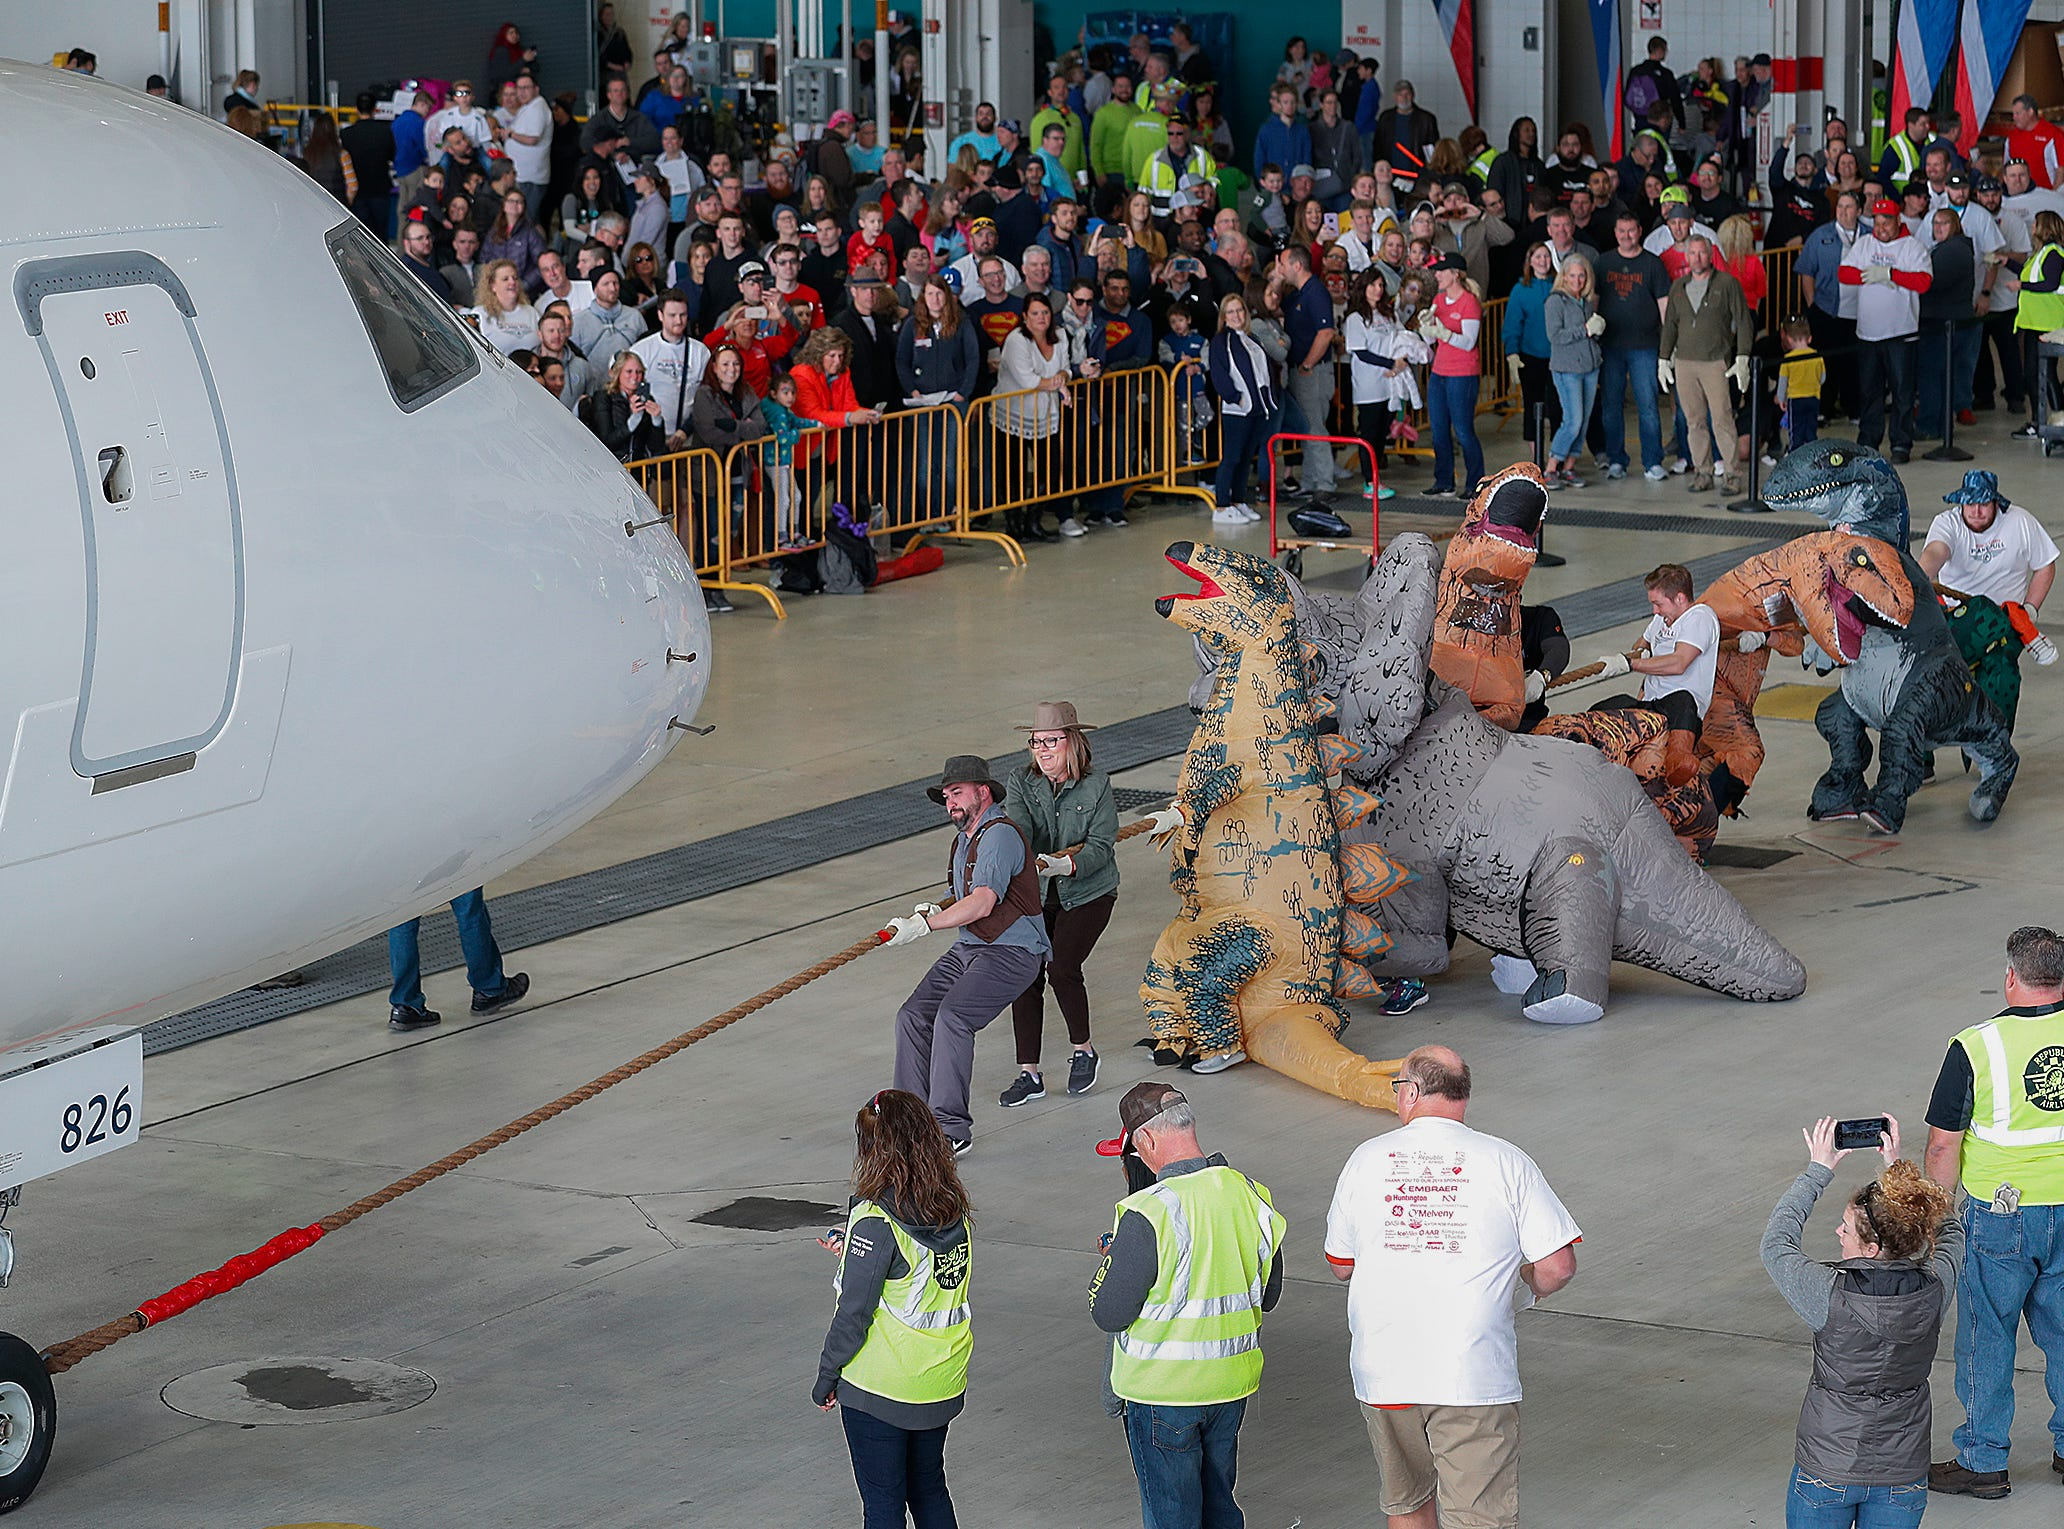 GE Aviation group pulls an Embraer 170/175 aircraft 15 feet during the 9th Annual Republic Airways Plane Pull at the Republic Airways Hanger at the Indianapolis International Airport on Saturday, April 13, 2019.